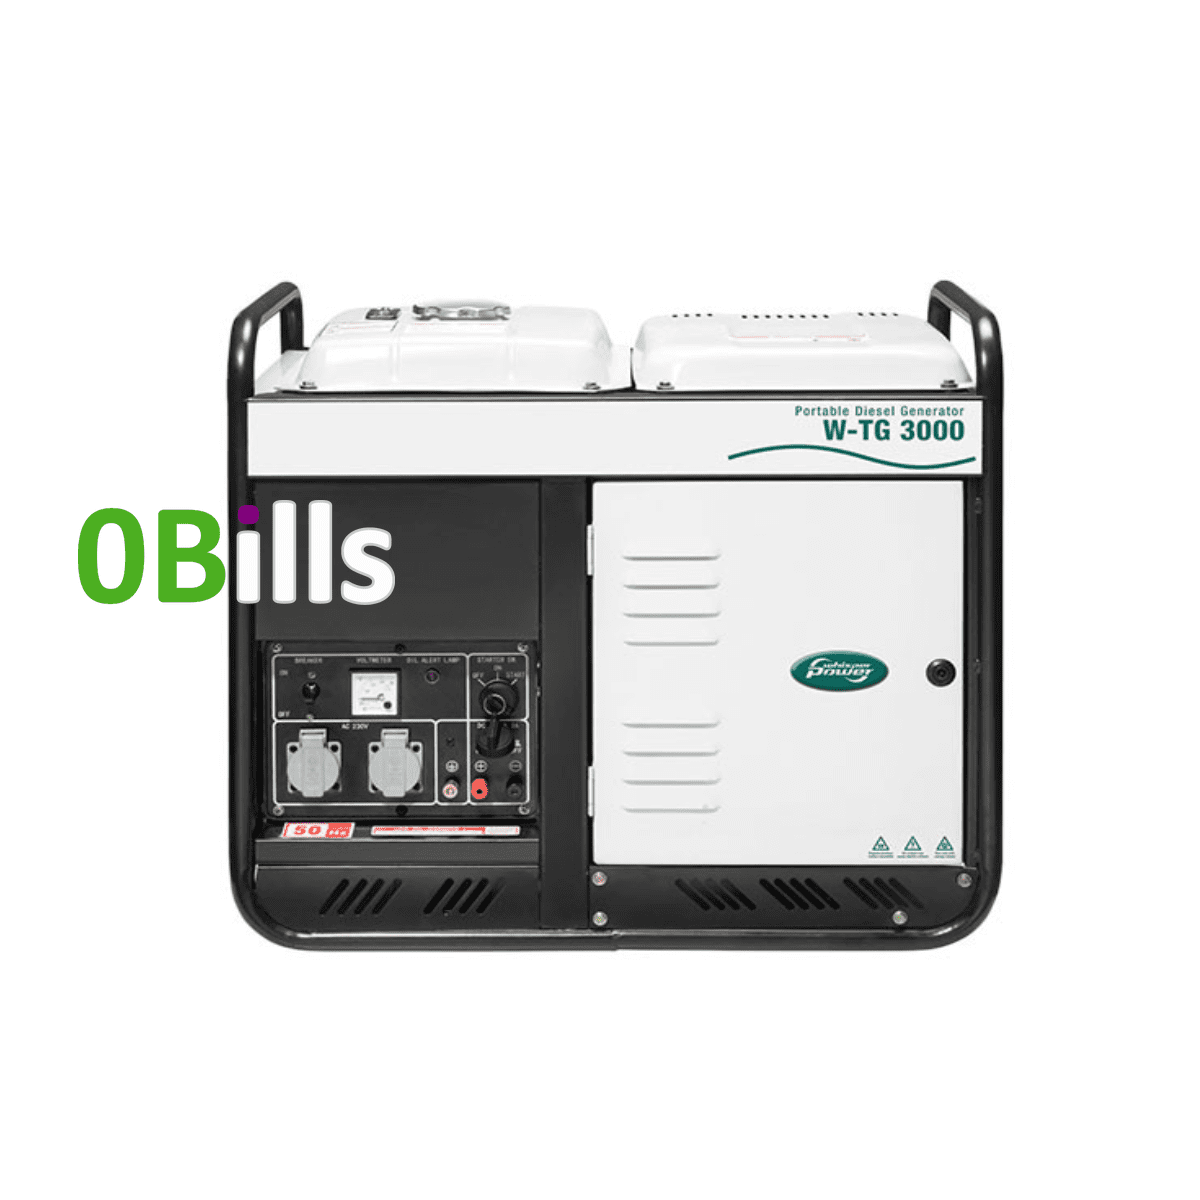 Portable Diesel Generator Whisperpower W-TG 3000 on Sale at Best Price